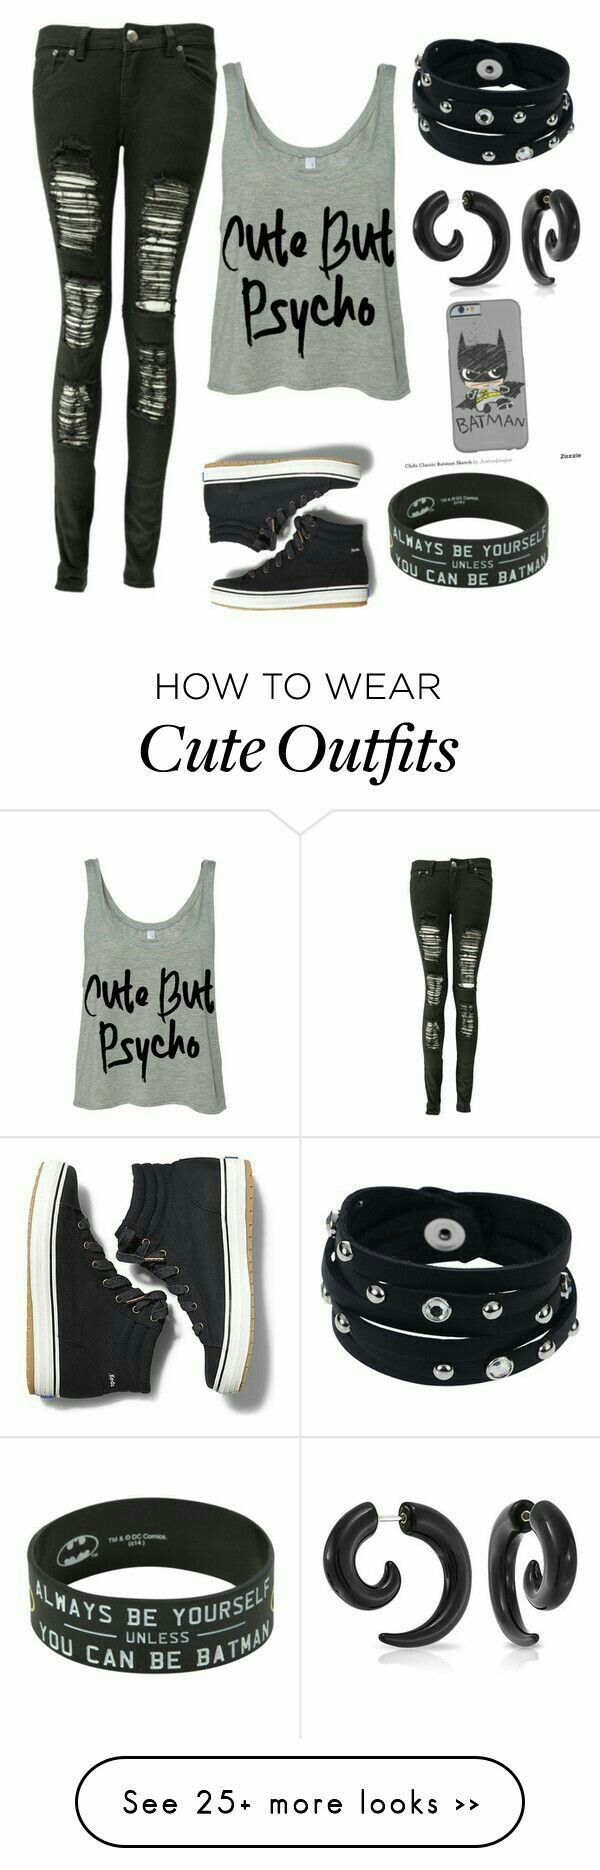 Emo Tumblr Outfits Cute